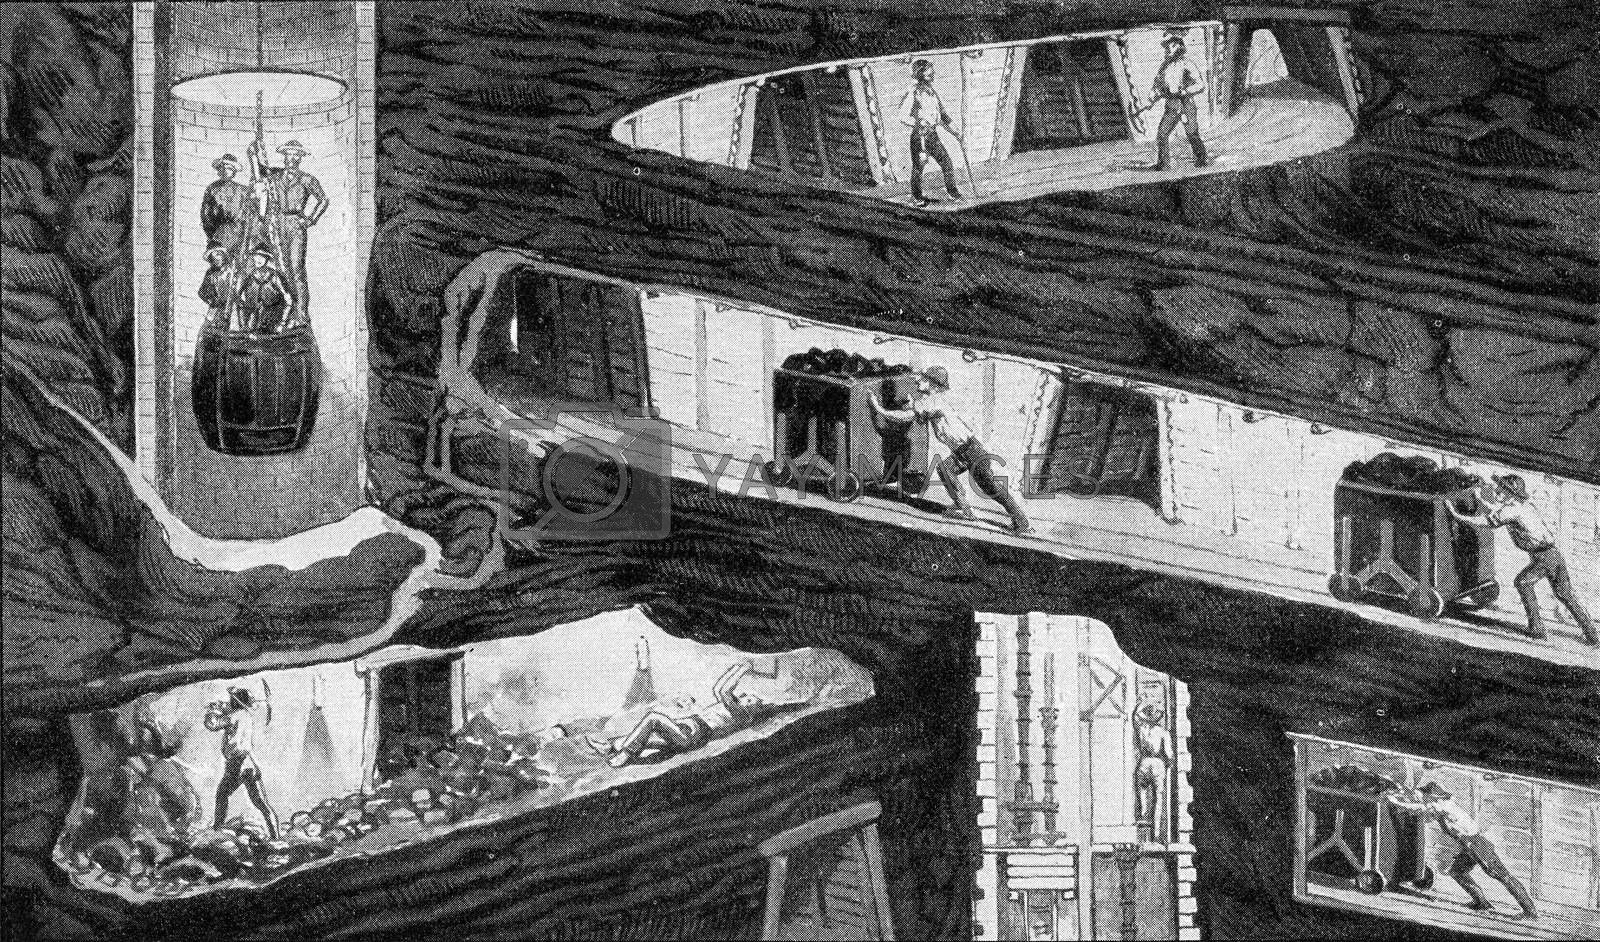 Section of a mine in the mid-nineteenth century, vintage engravi by Morphart